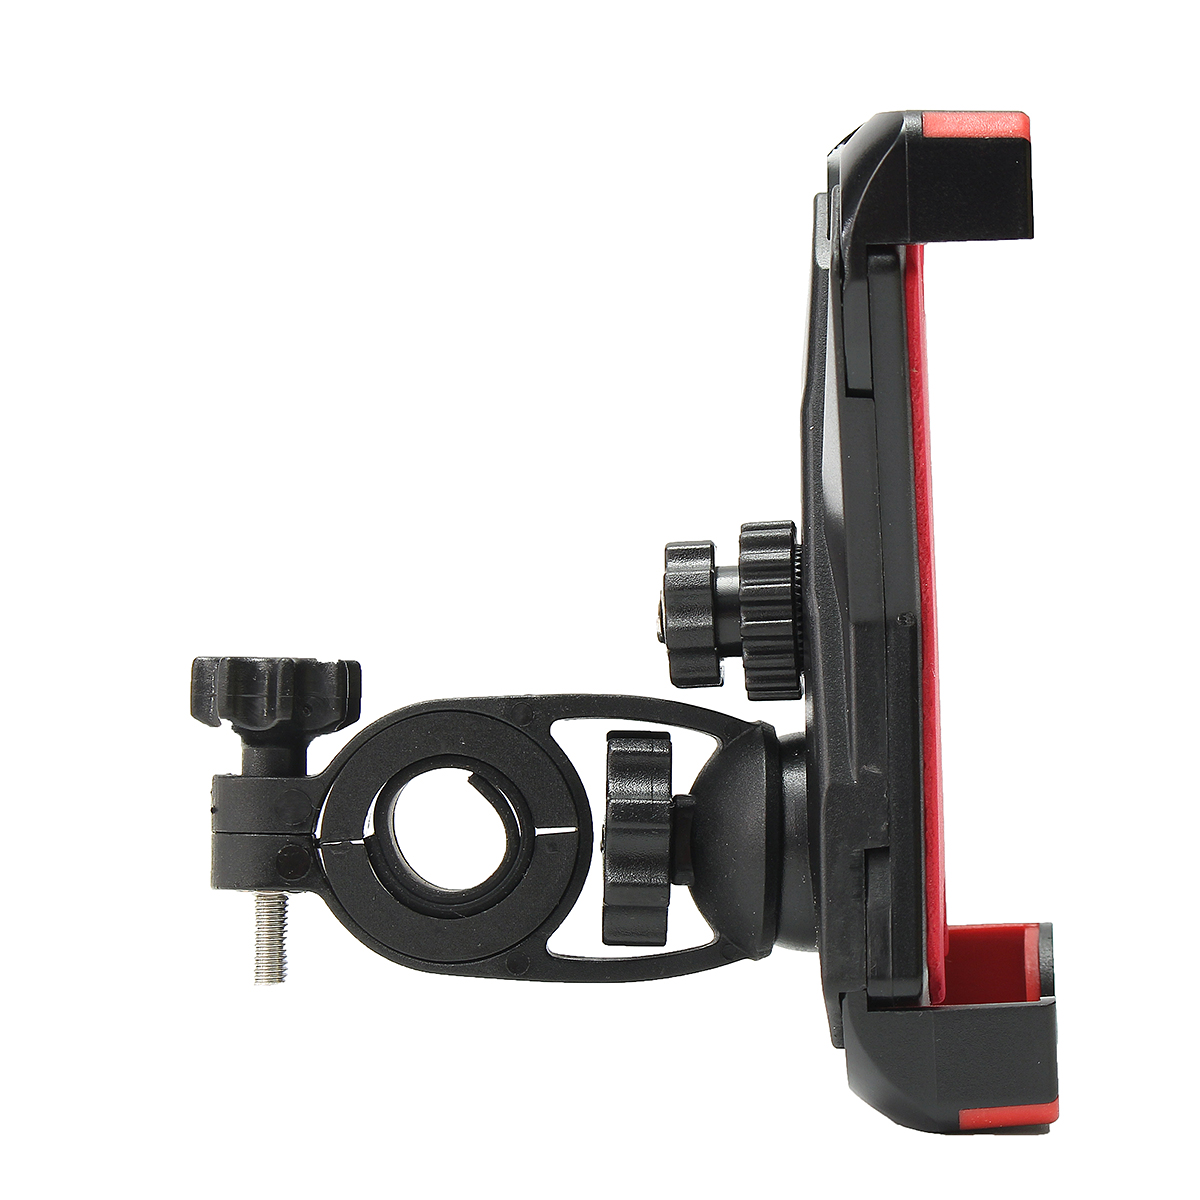 Universal Motorcycle Bike Bicycle Handlebar Mount Holder For Mobile Phone GPS